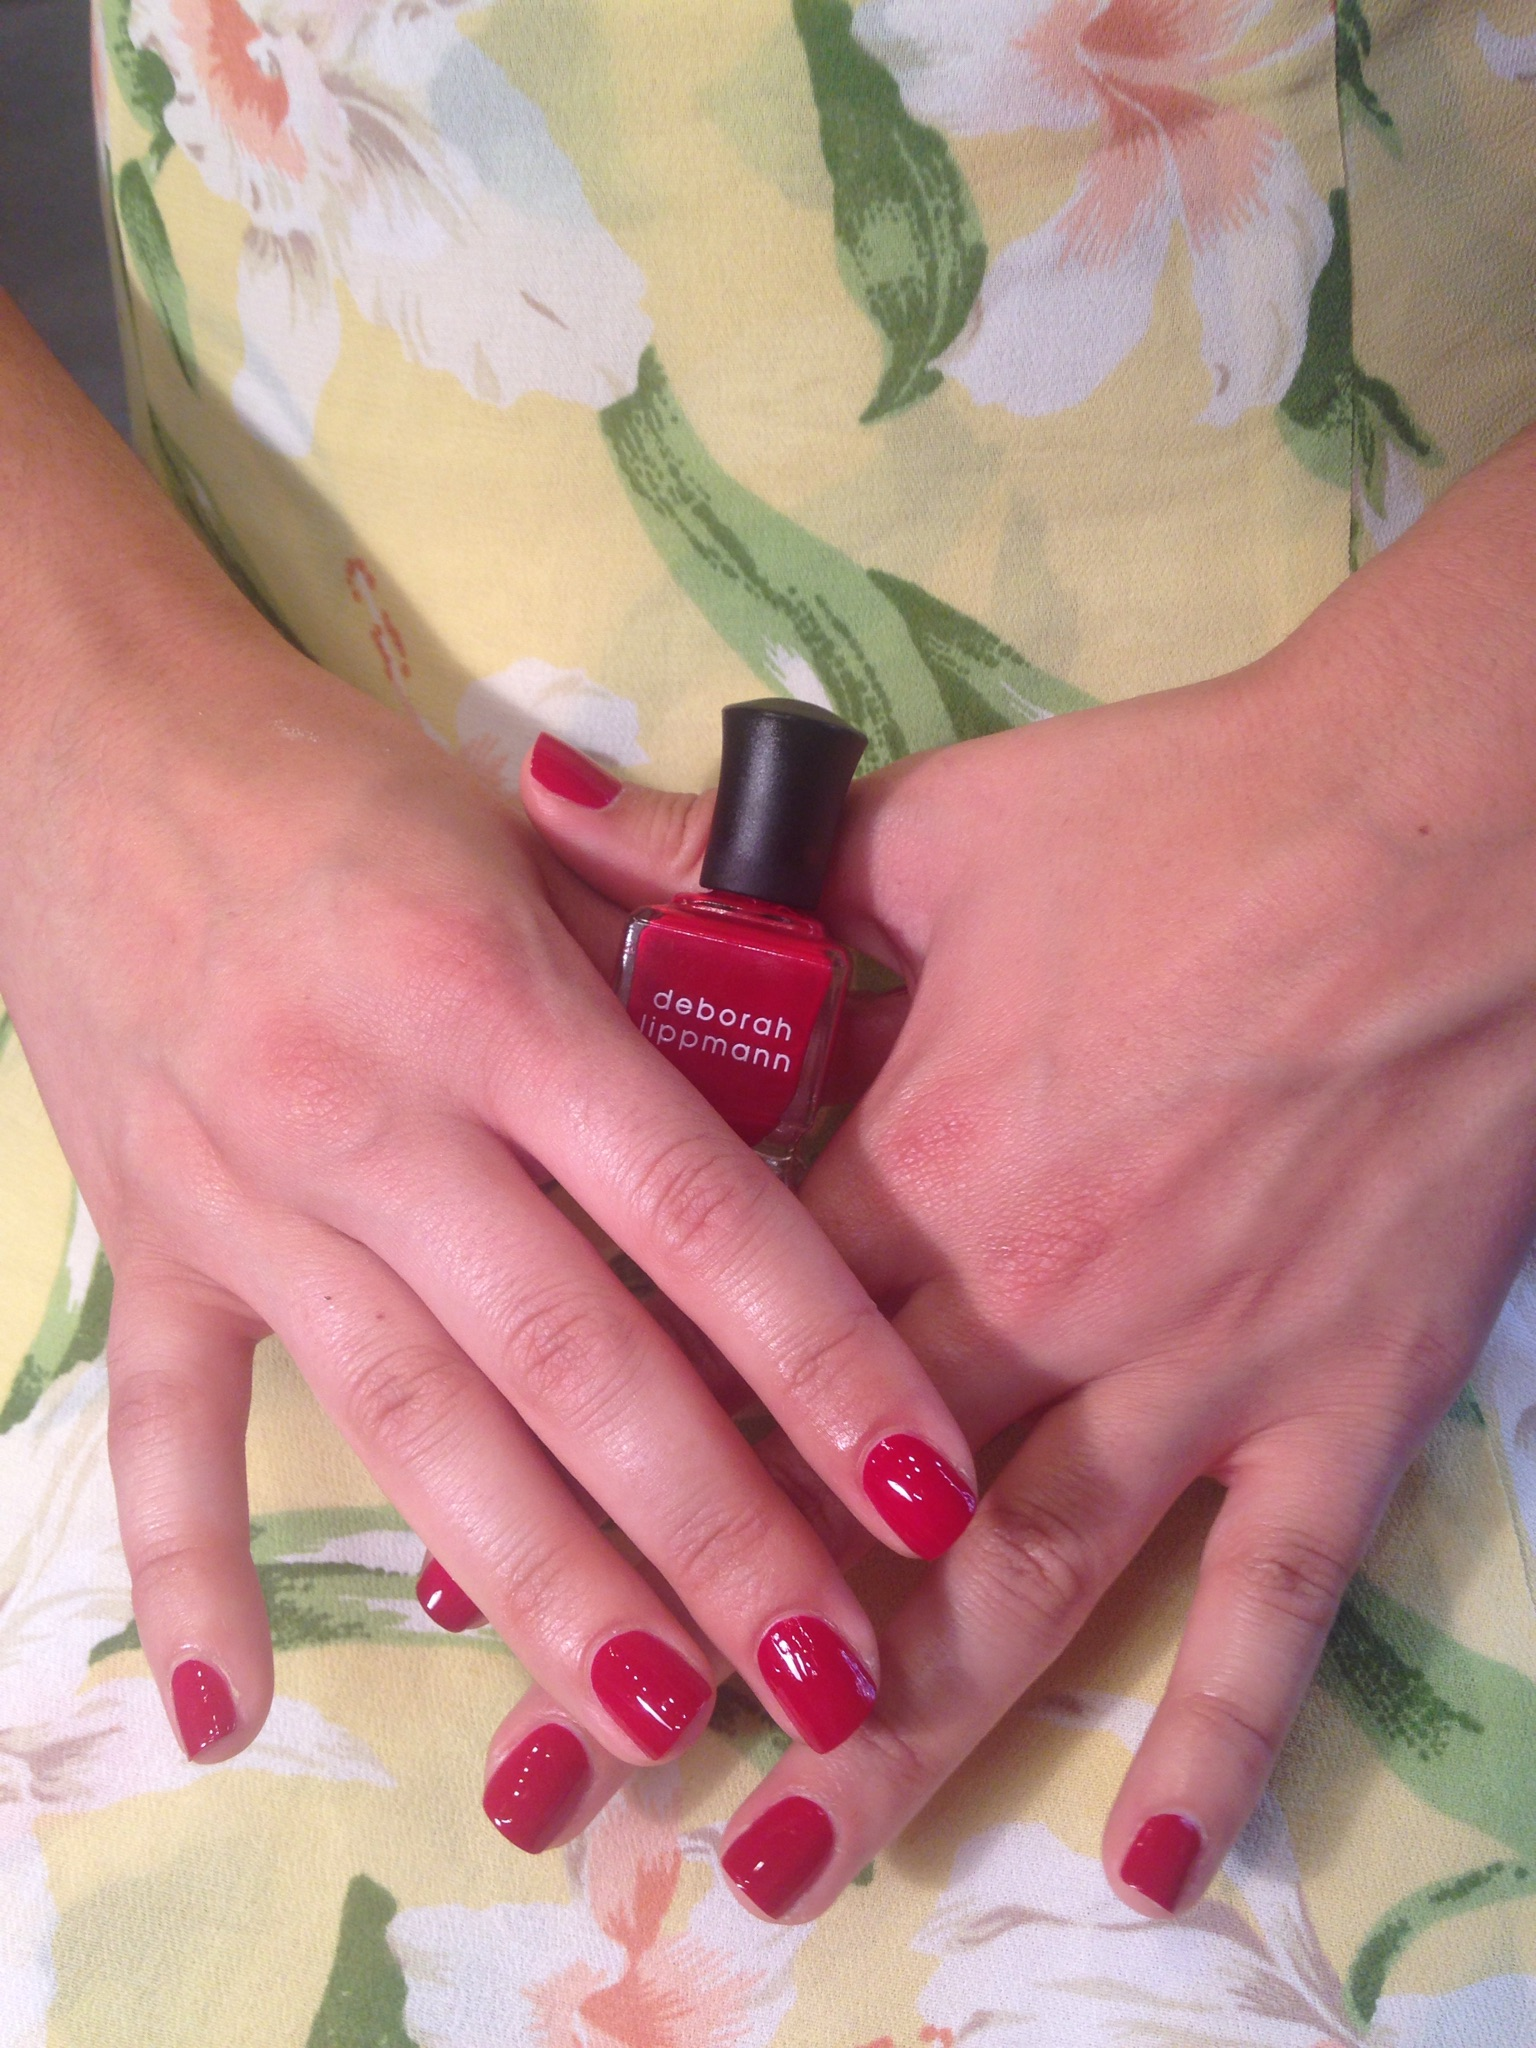 Deborah Lippmann, Red Nails, Perfect Red, Perfect Red Mani, Red Manicure, Perfect Manicure, Best of Bend, Voted Best in Bend, Oregon, Best Manicure,